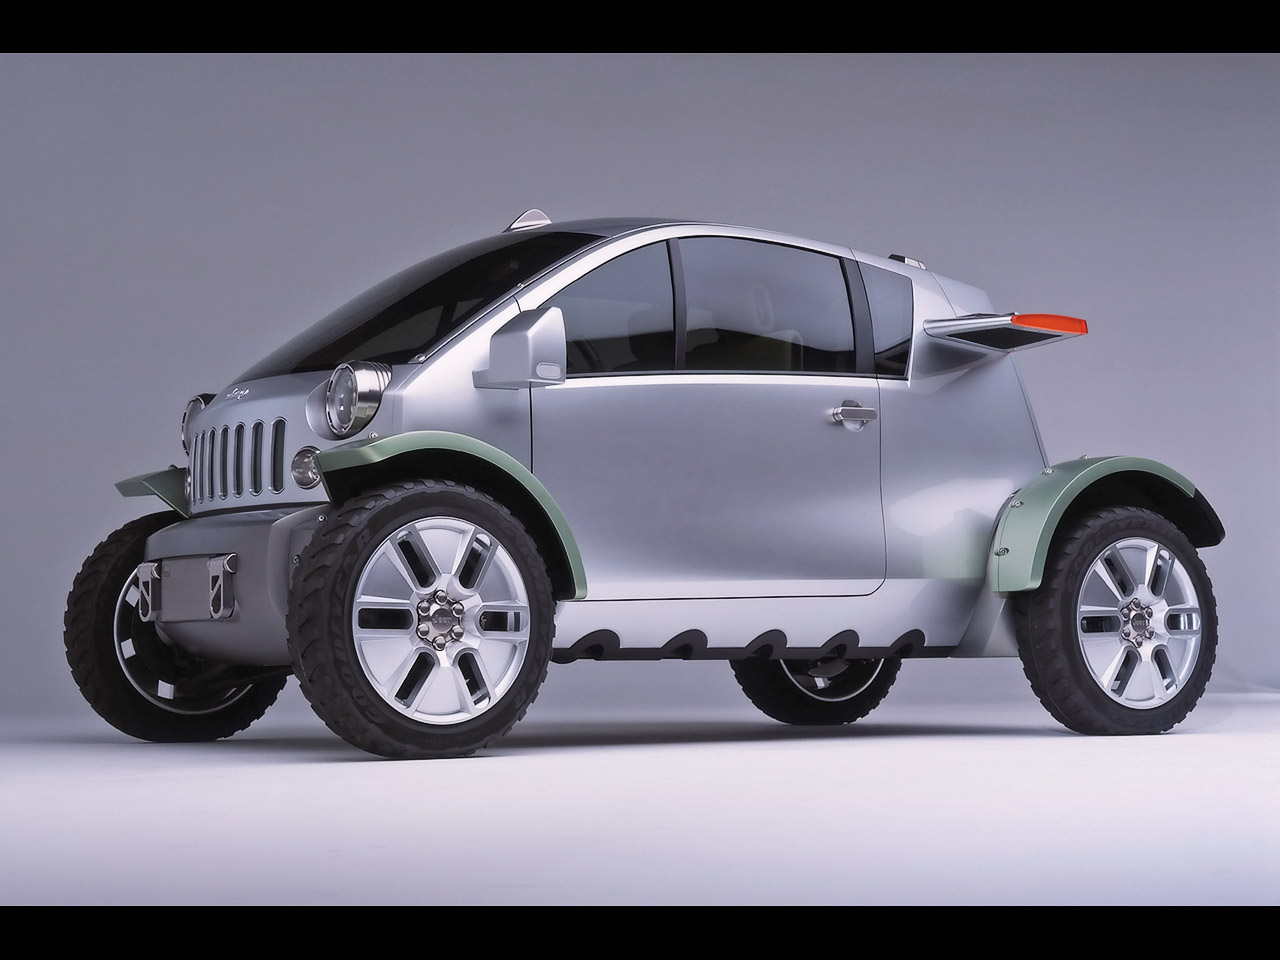 Jeep Companies Cars >> 2003 Jeep Treo Concept Images. Photo 2003-Jeep-Treo-Concept-HR-manu-03.jpg